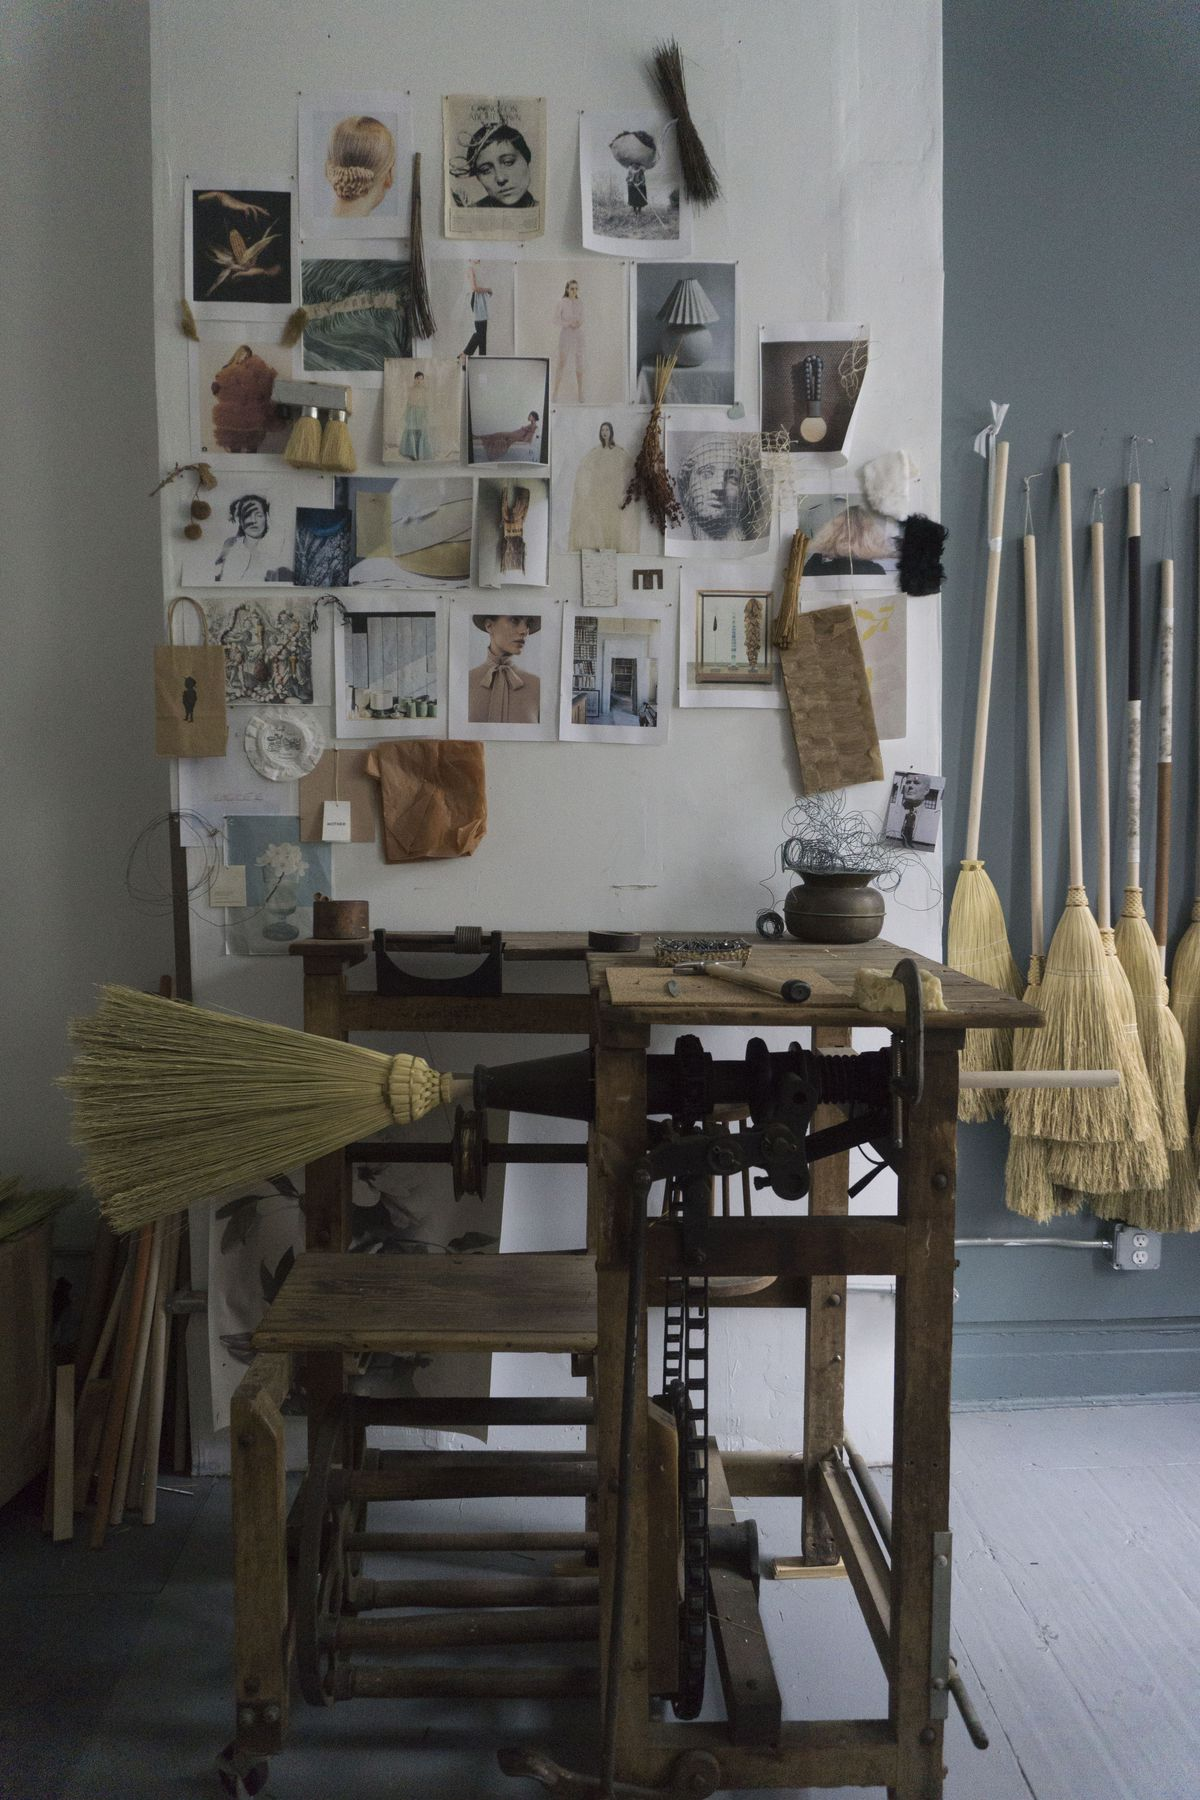 A broom is inserted into a broom-machine in front of a wall of hanging brooms and a mood board.